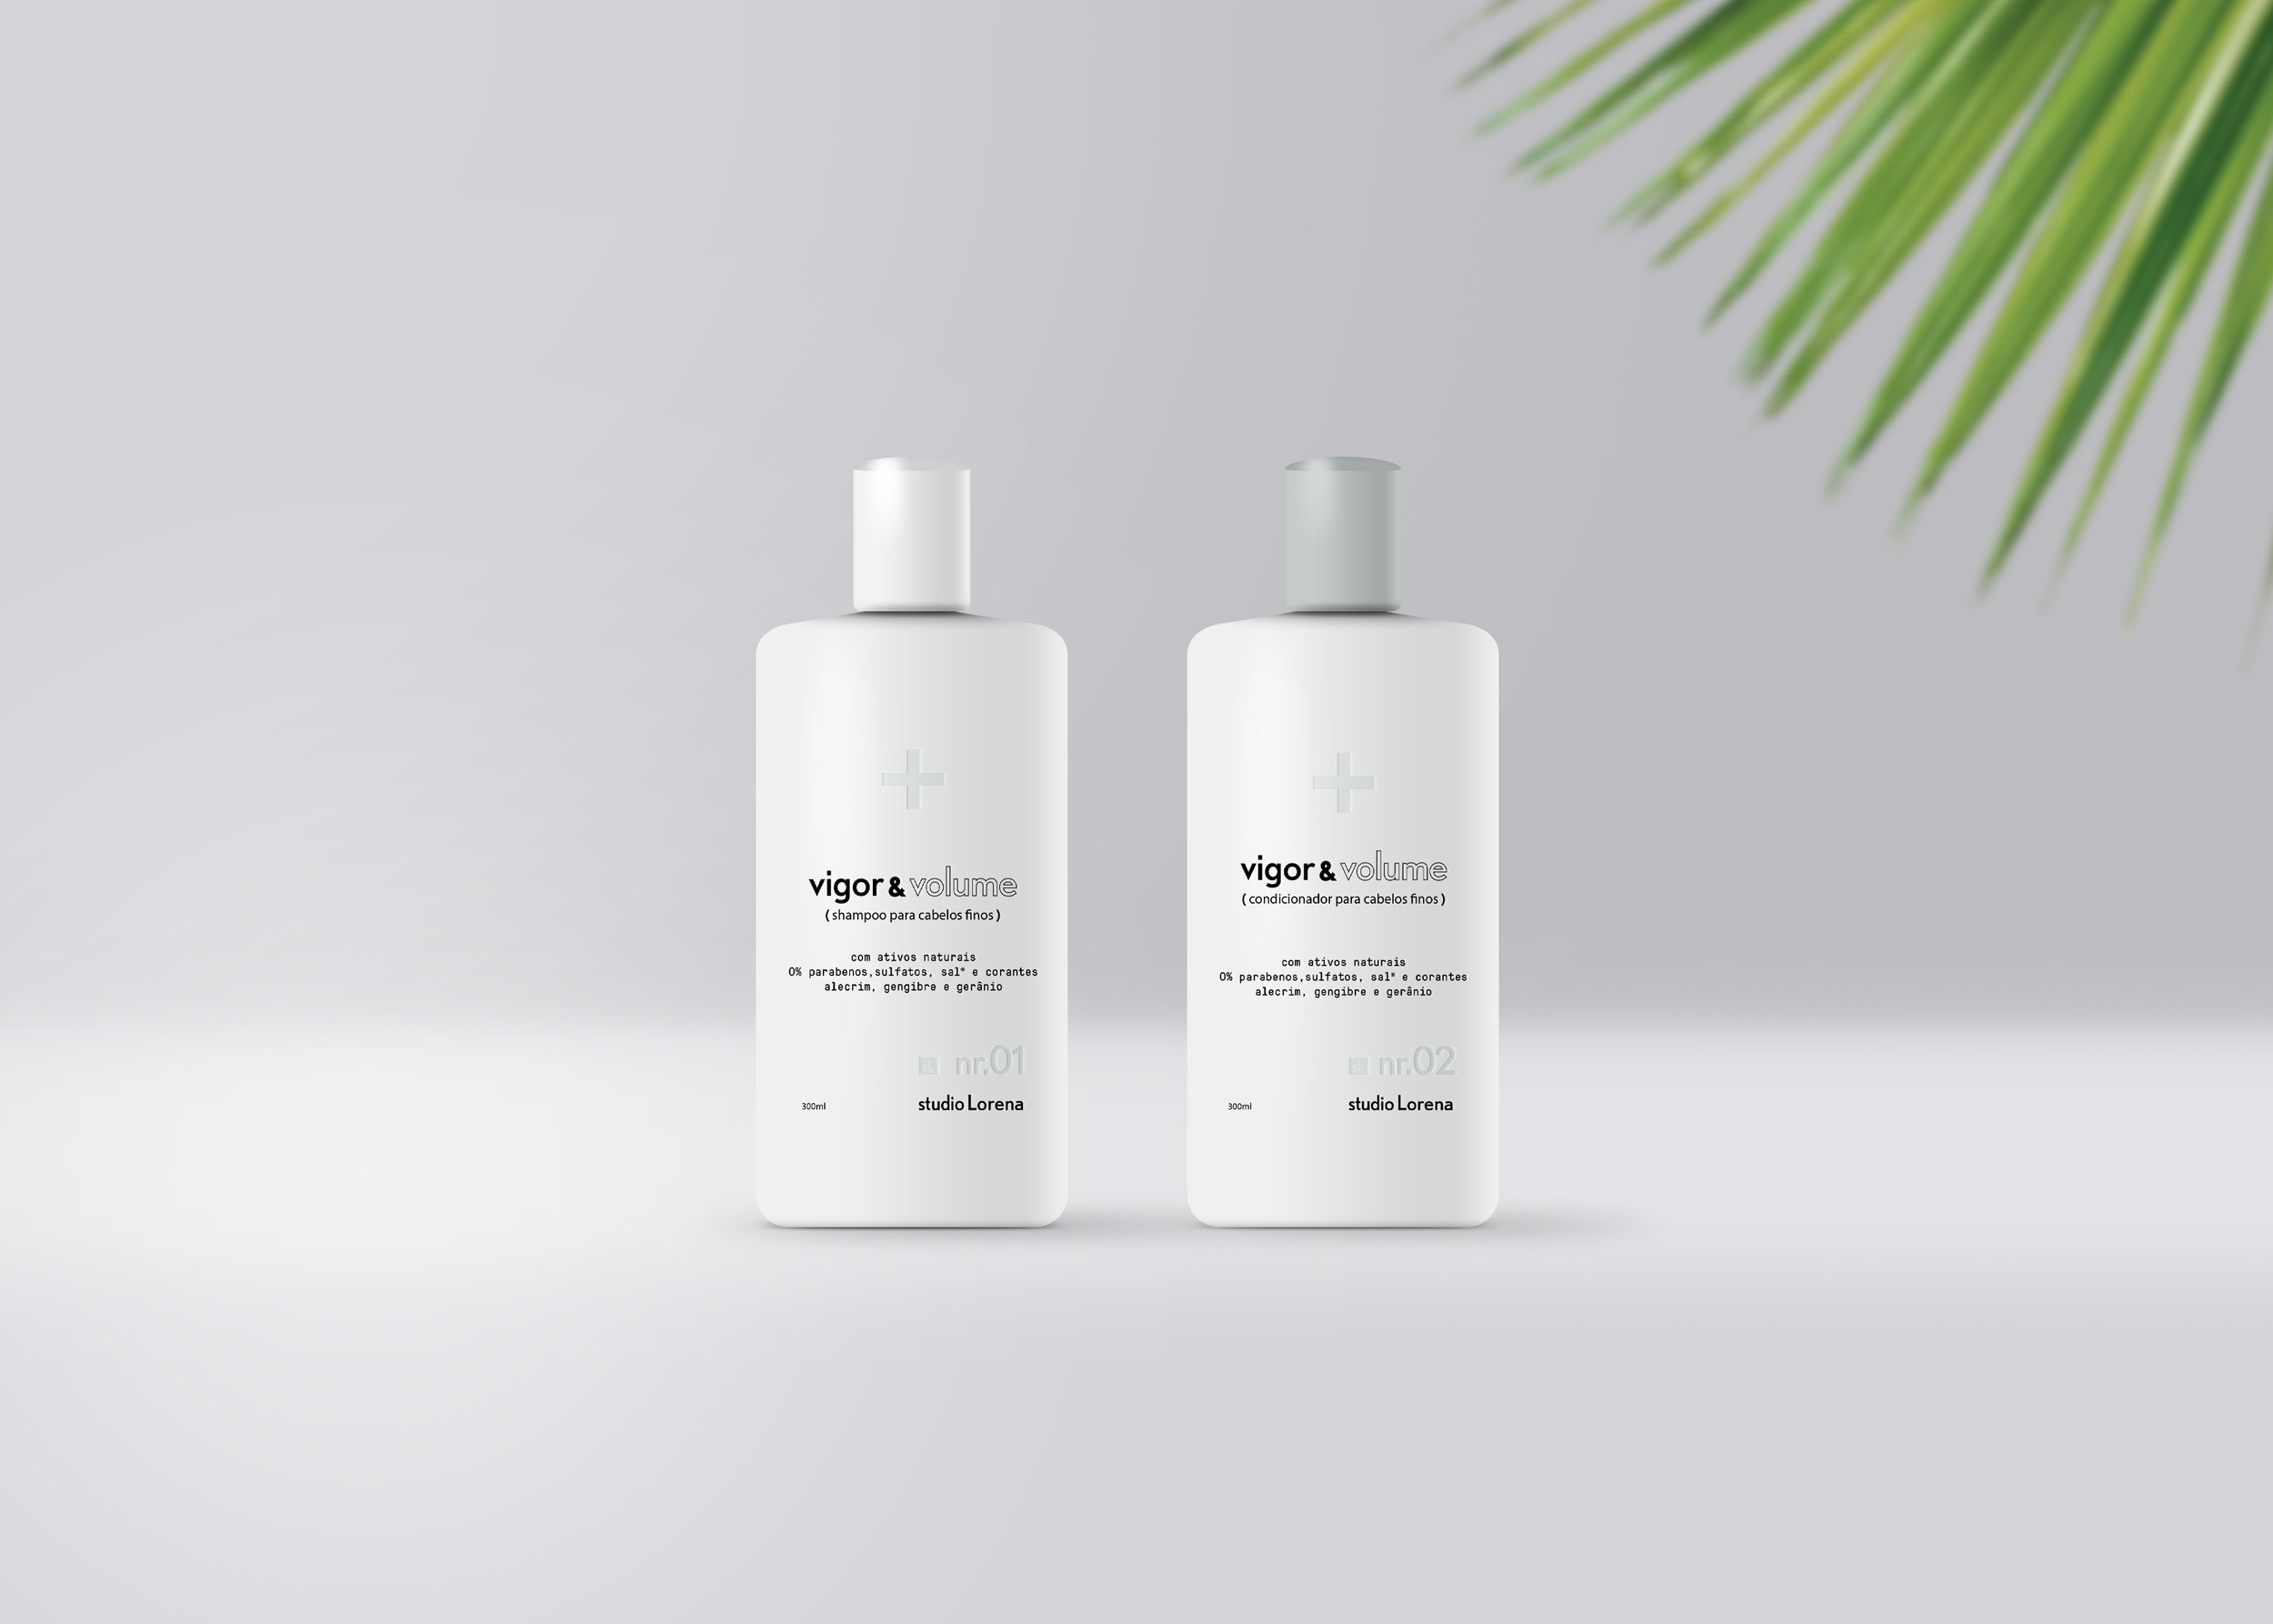 Lotion-Bottle-White-Mockup Lorena Vigor.jpg